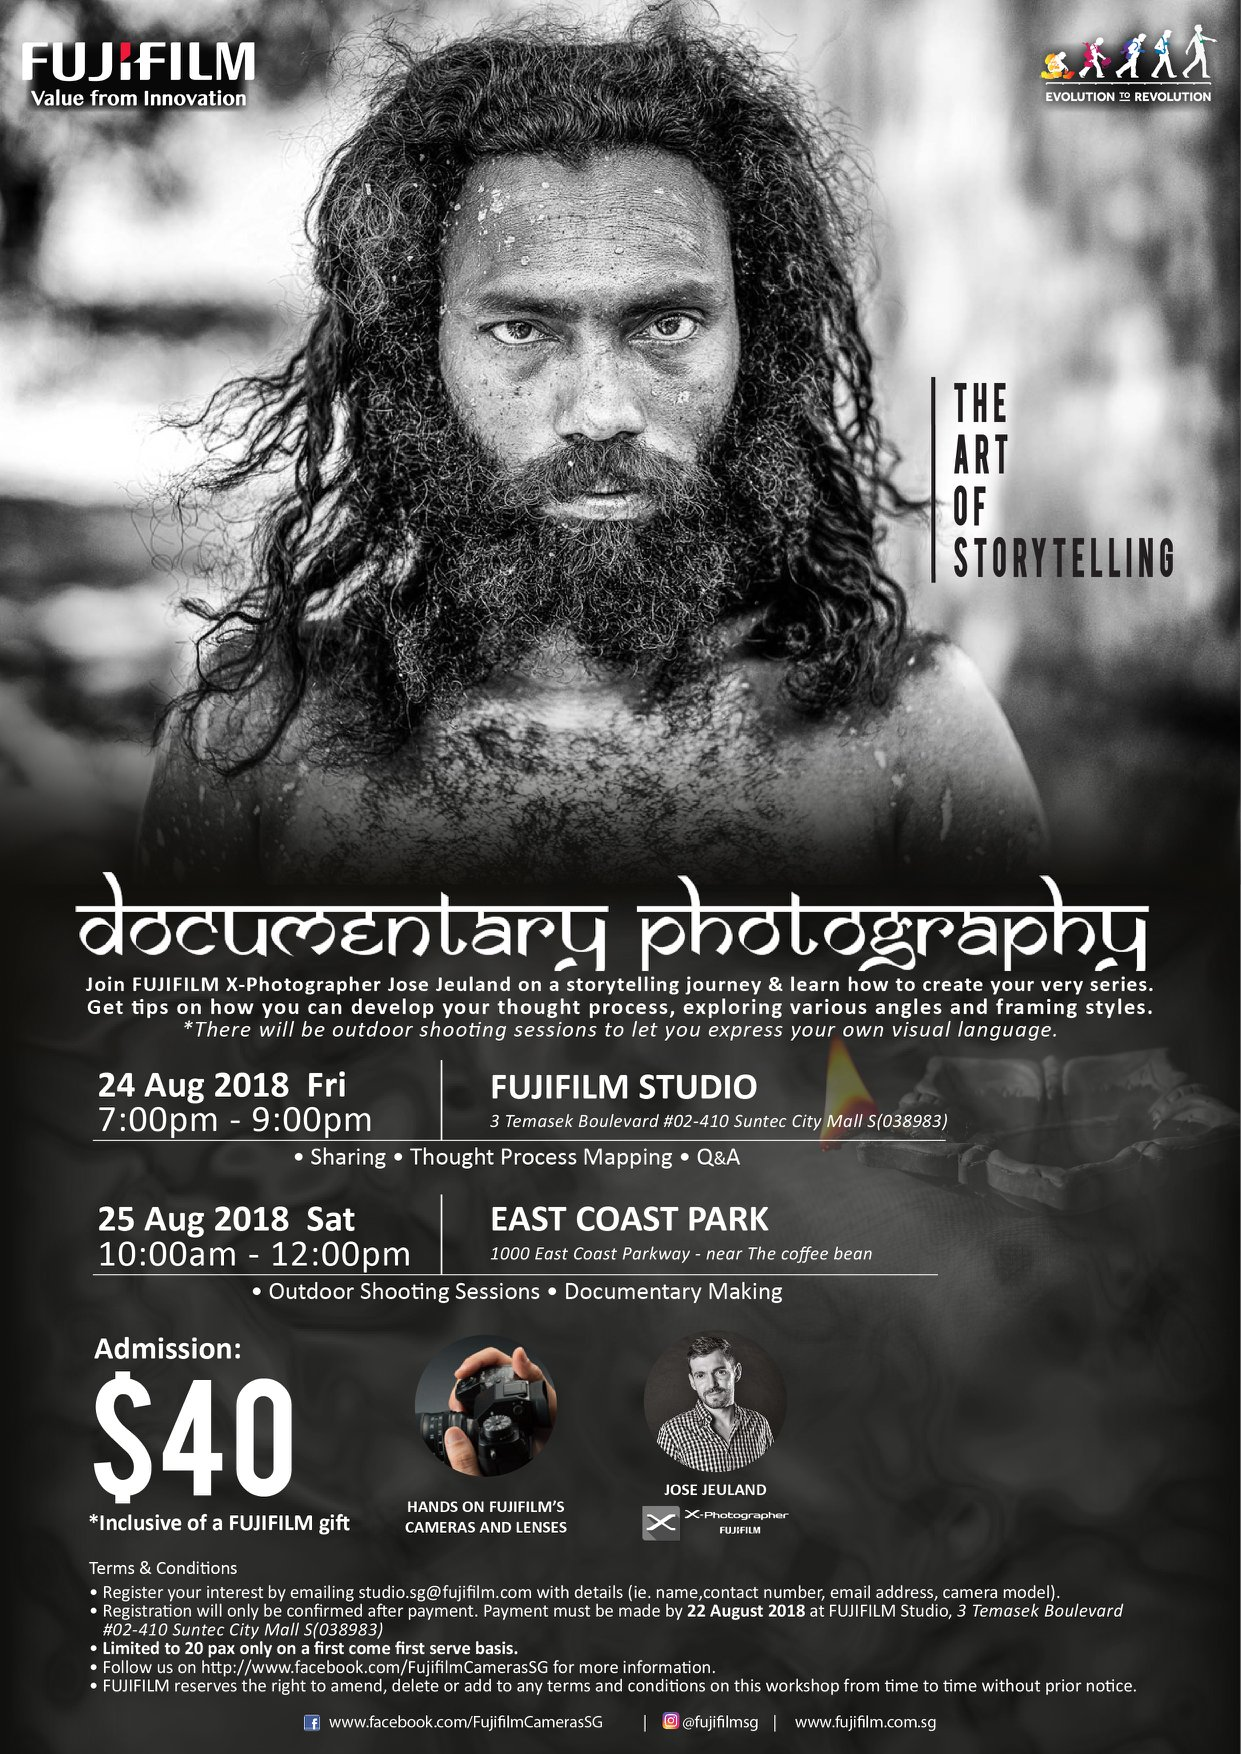 FUJIFILM Photography Workshop Singapore Jose Jeuland